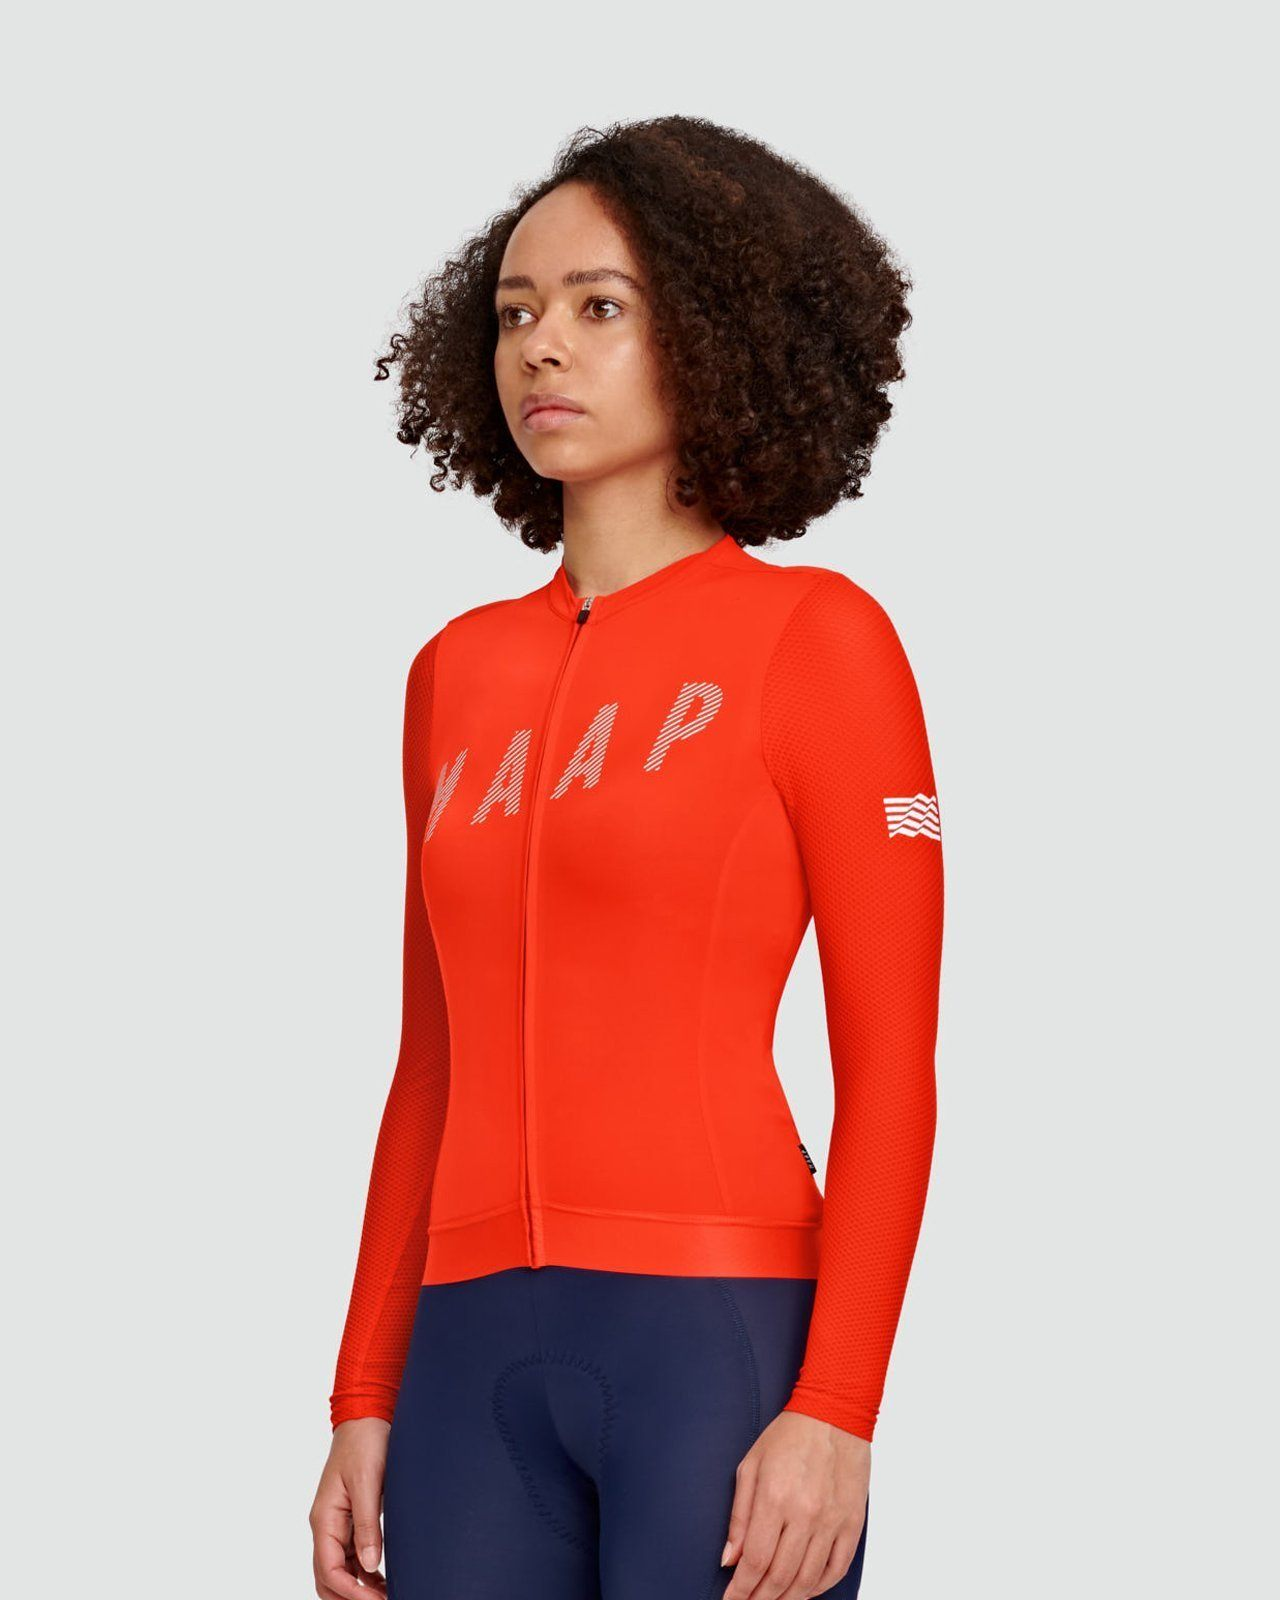 MAAP Women's Echo Pro Base LS Jersey - Chili Cycling Jersey MAAP